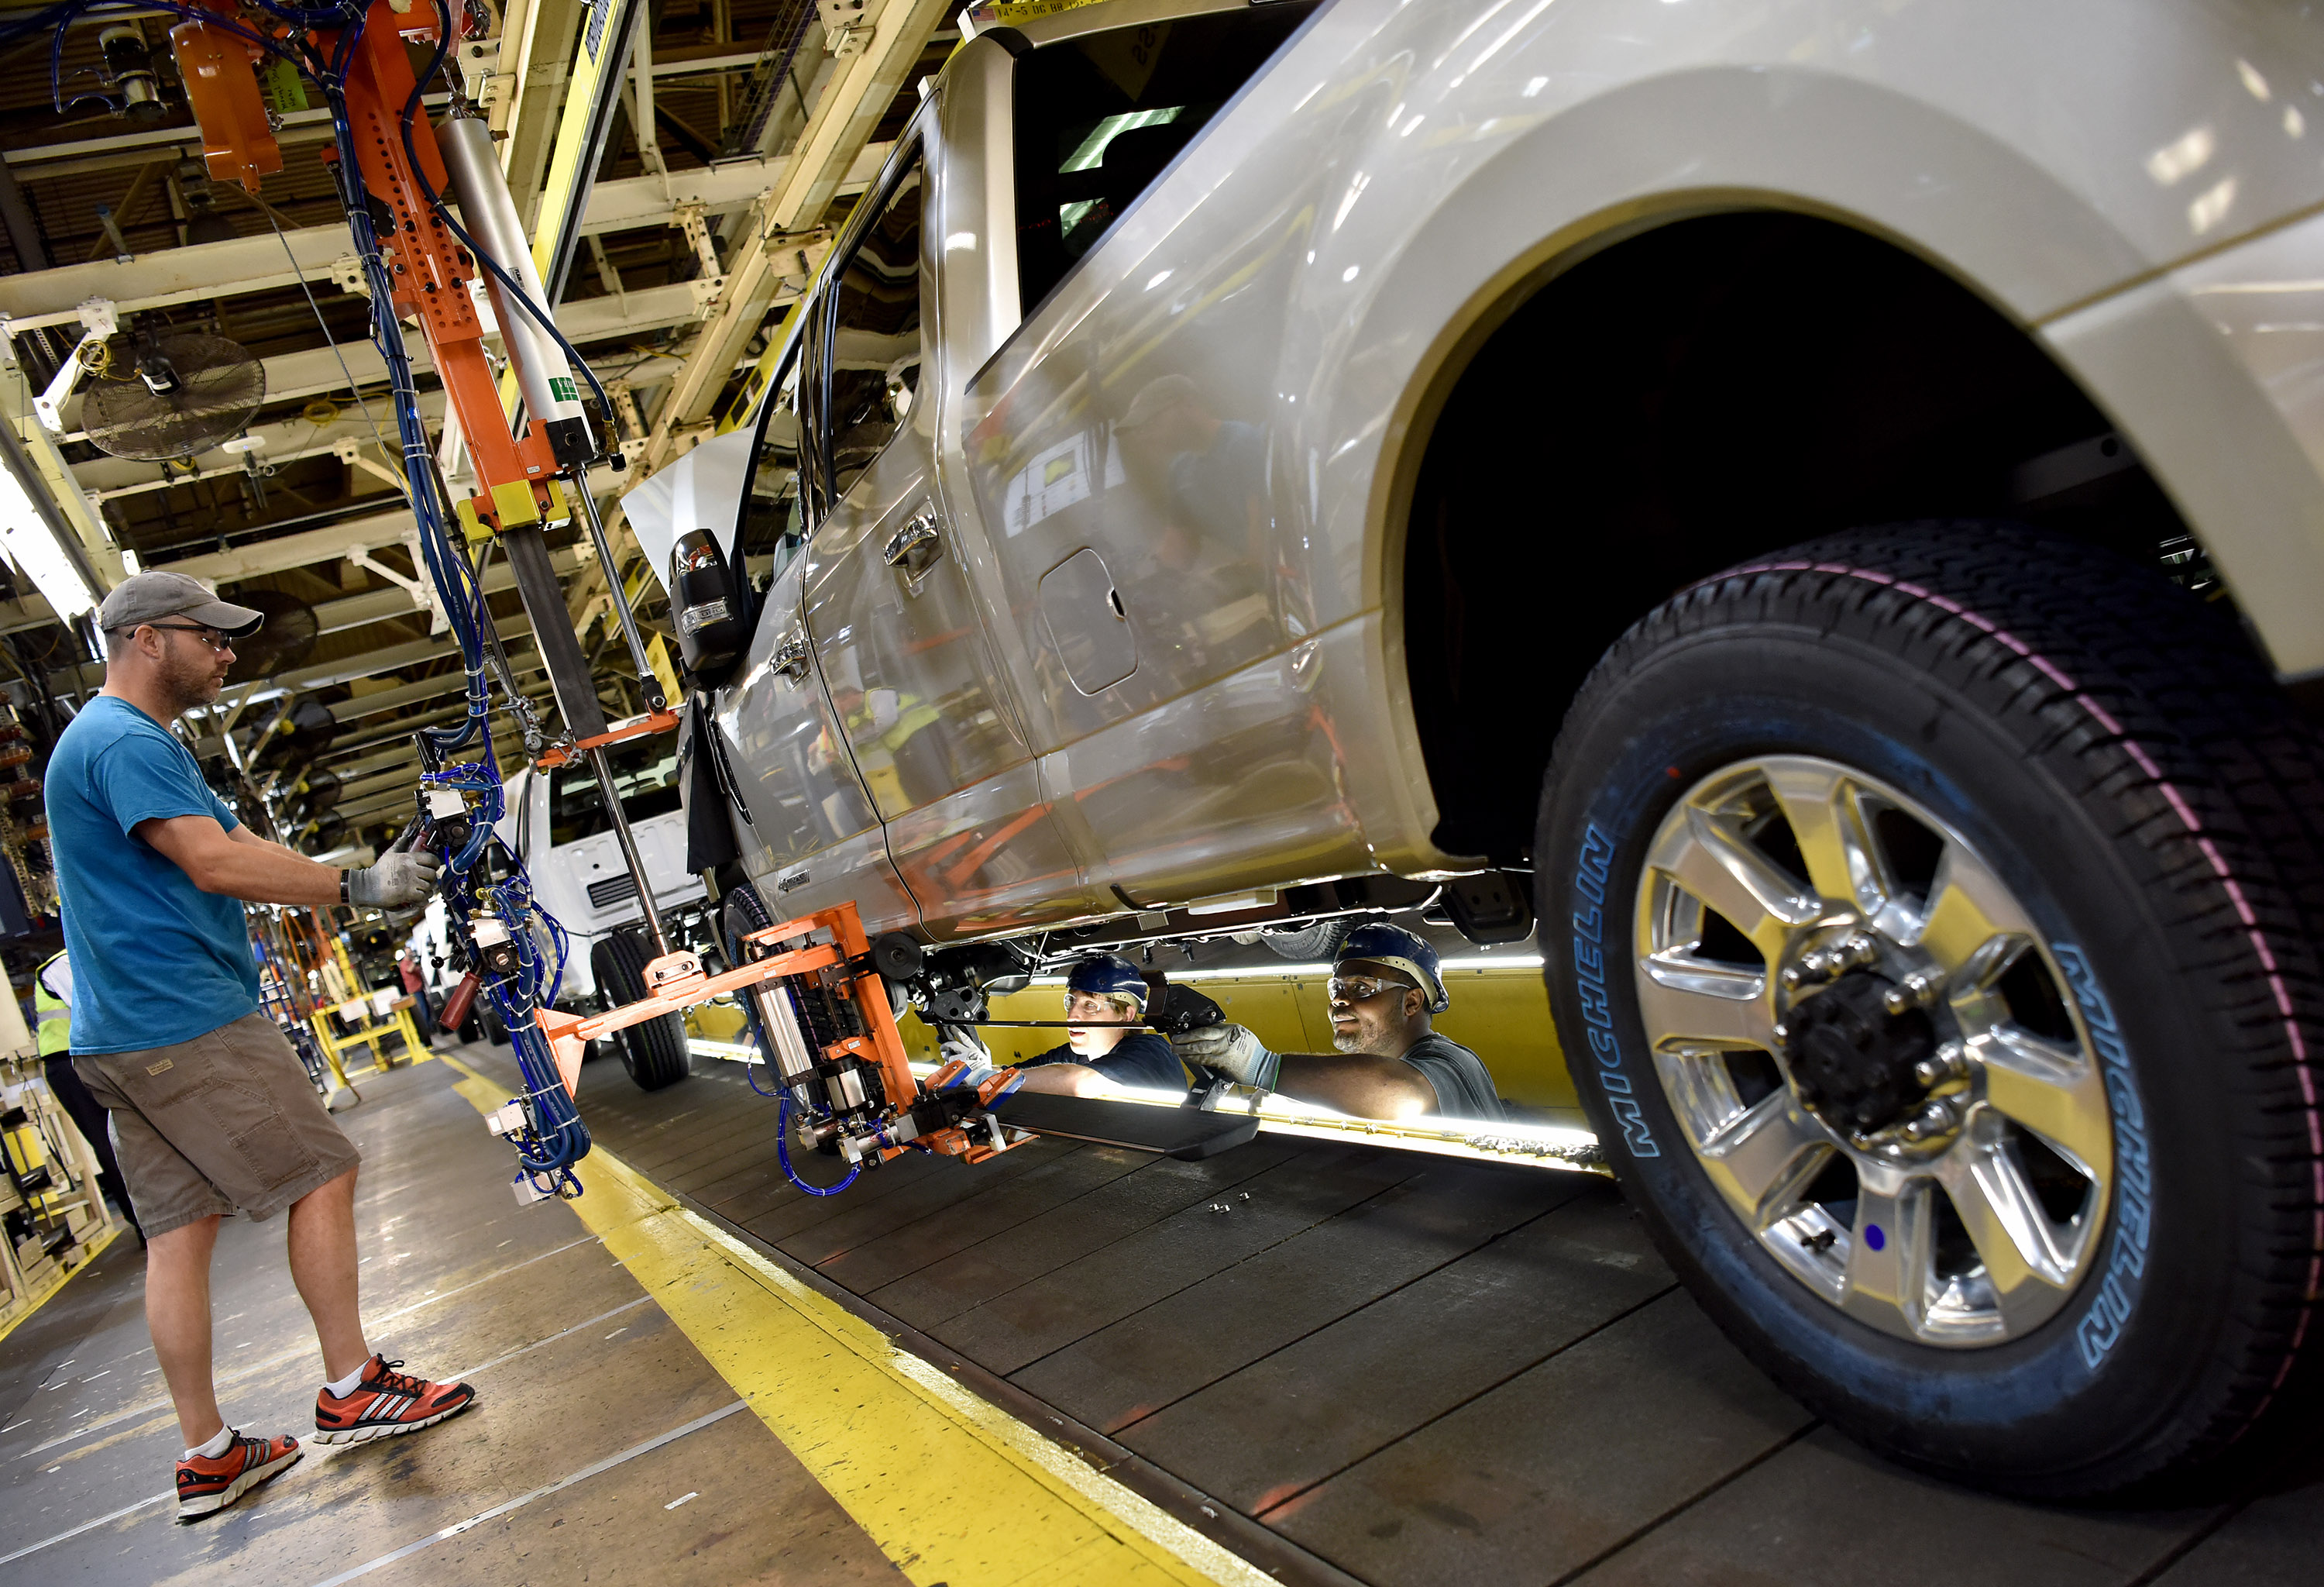 2017 Super Duty Production at Kentucky Truck Plant